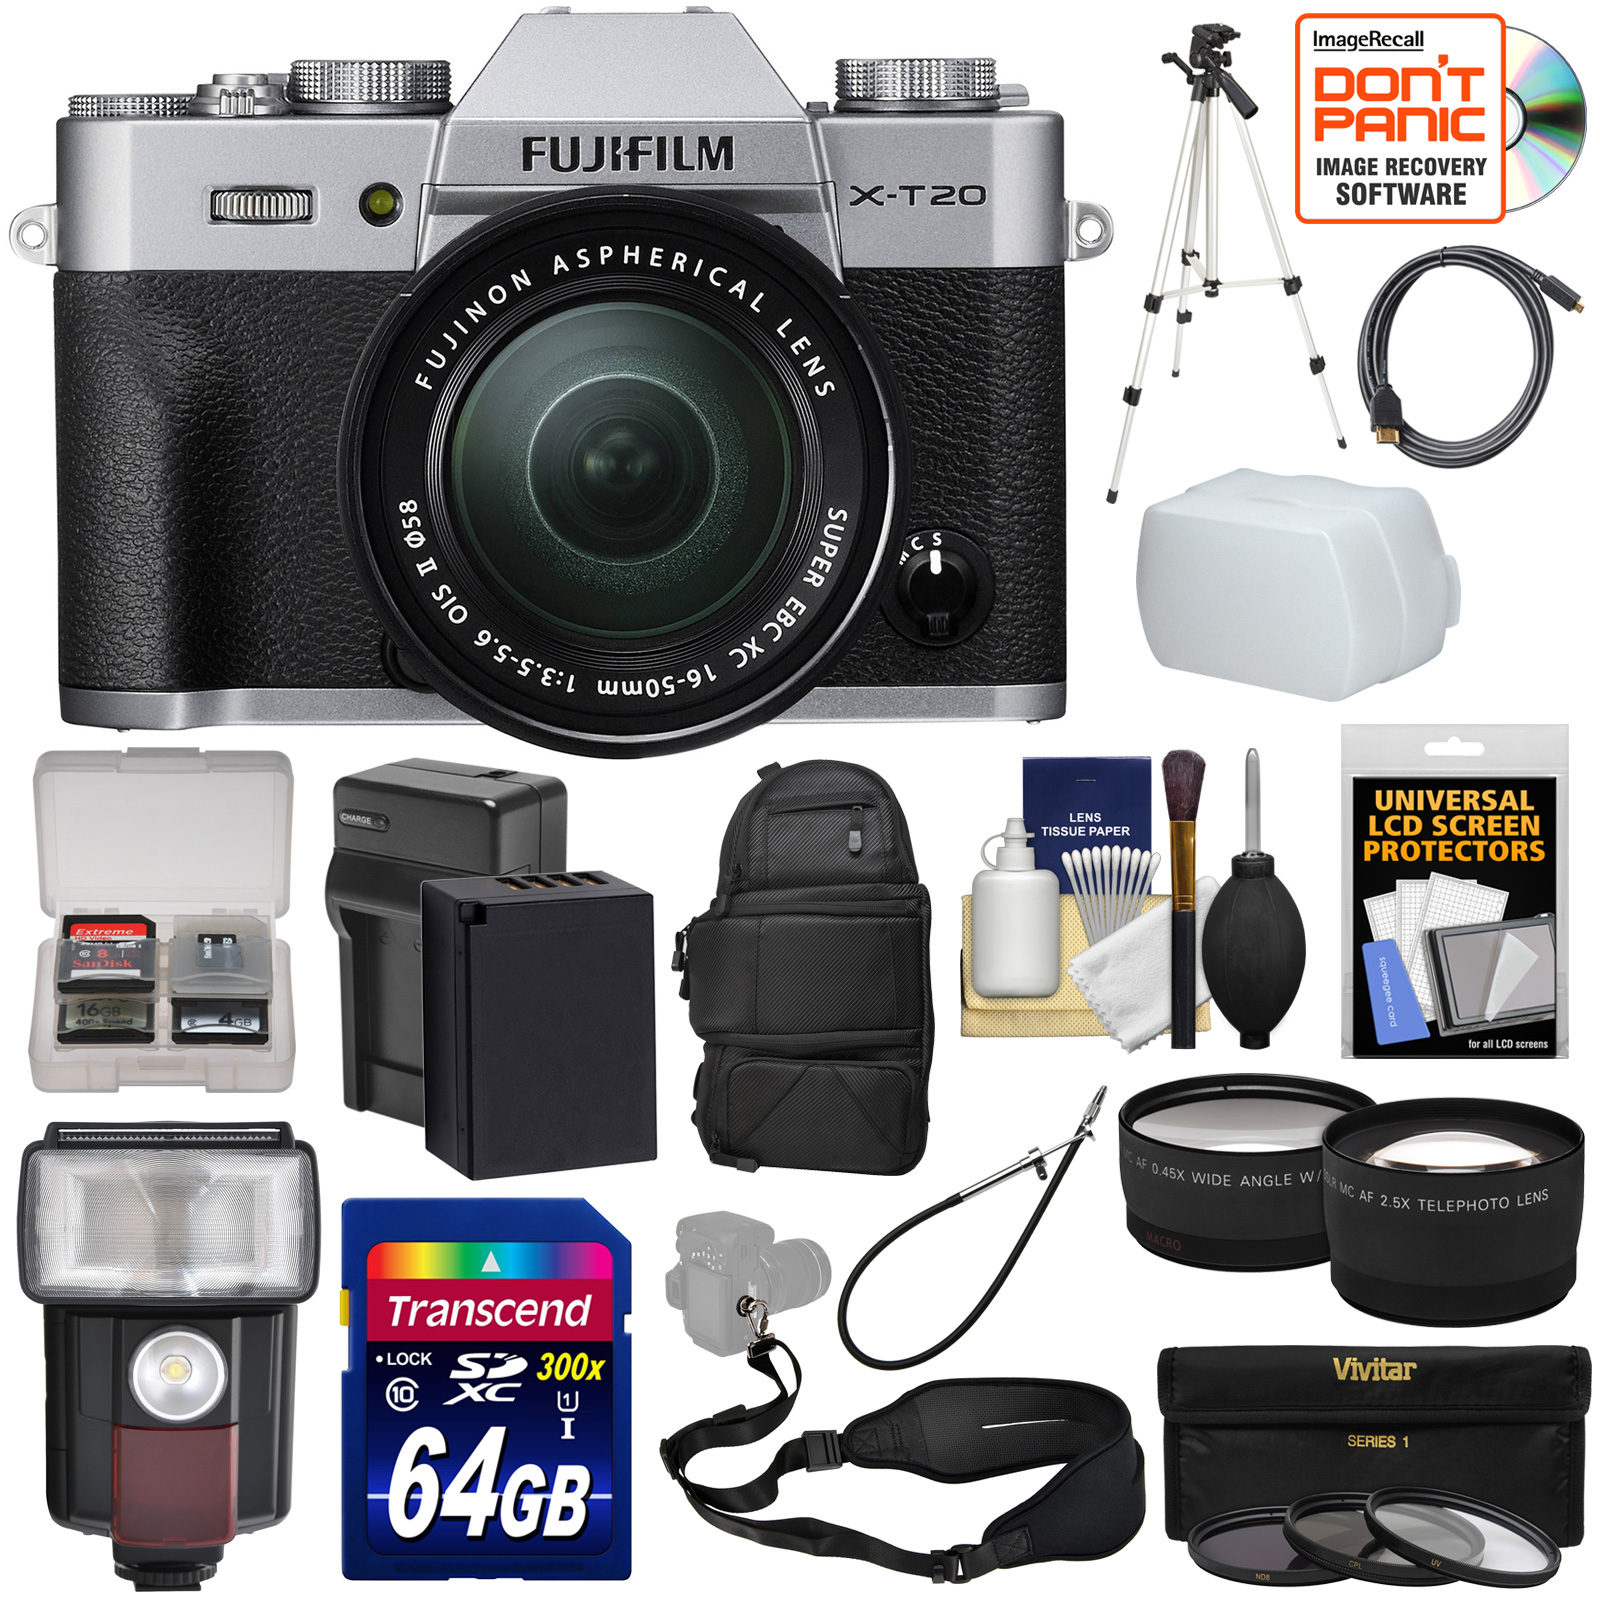 Fujifilm X-T20 Wi-Fi Digital Camera & 16-50mm XC Lens (Silver) with 64GB